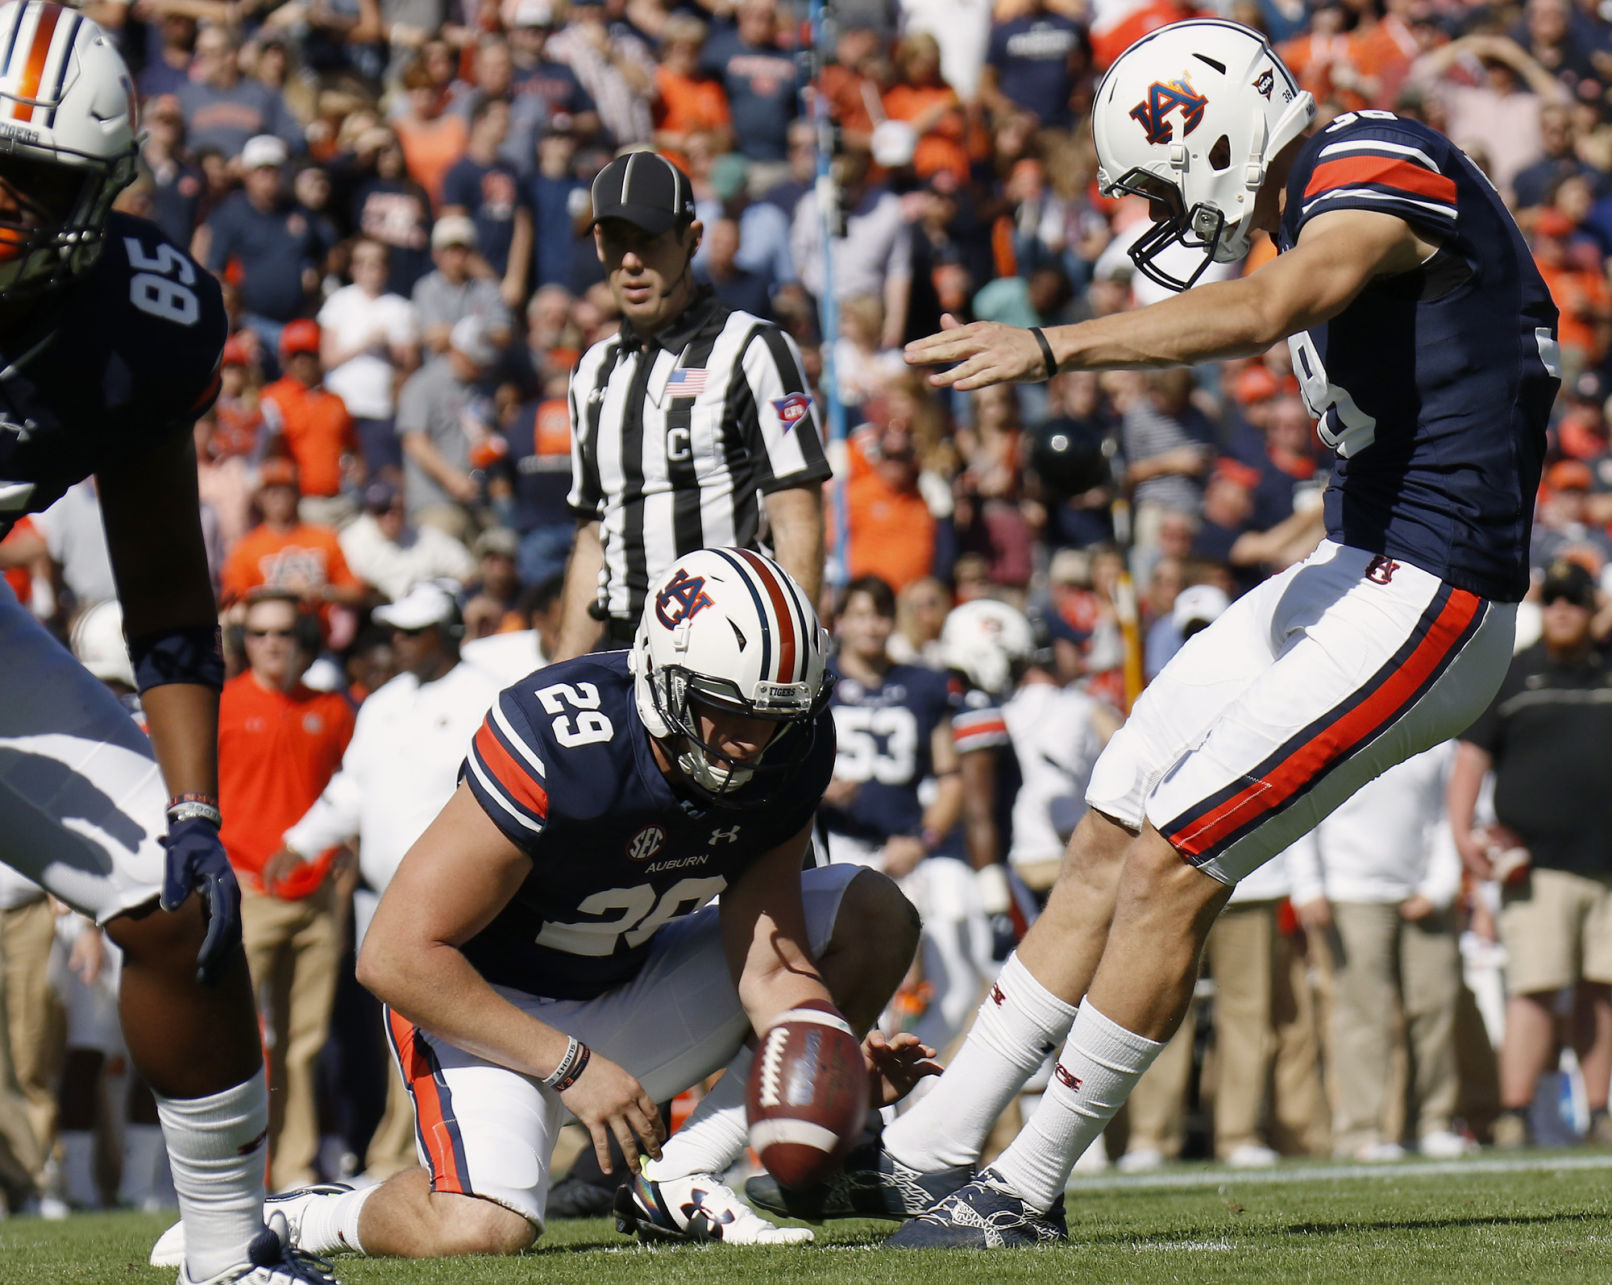 Daniel Carlson named to Walter Camp Award watch list